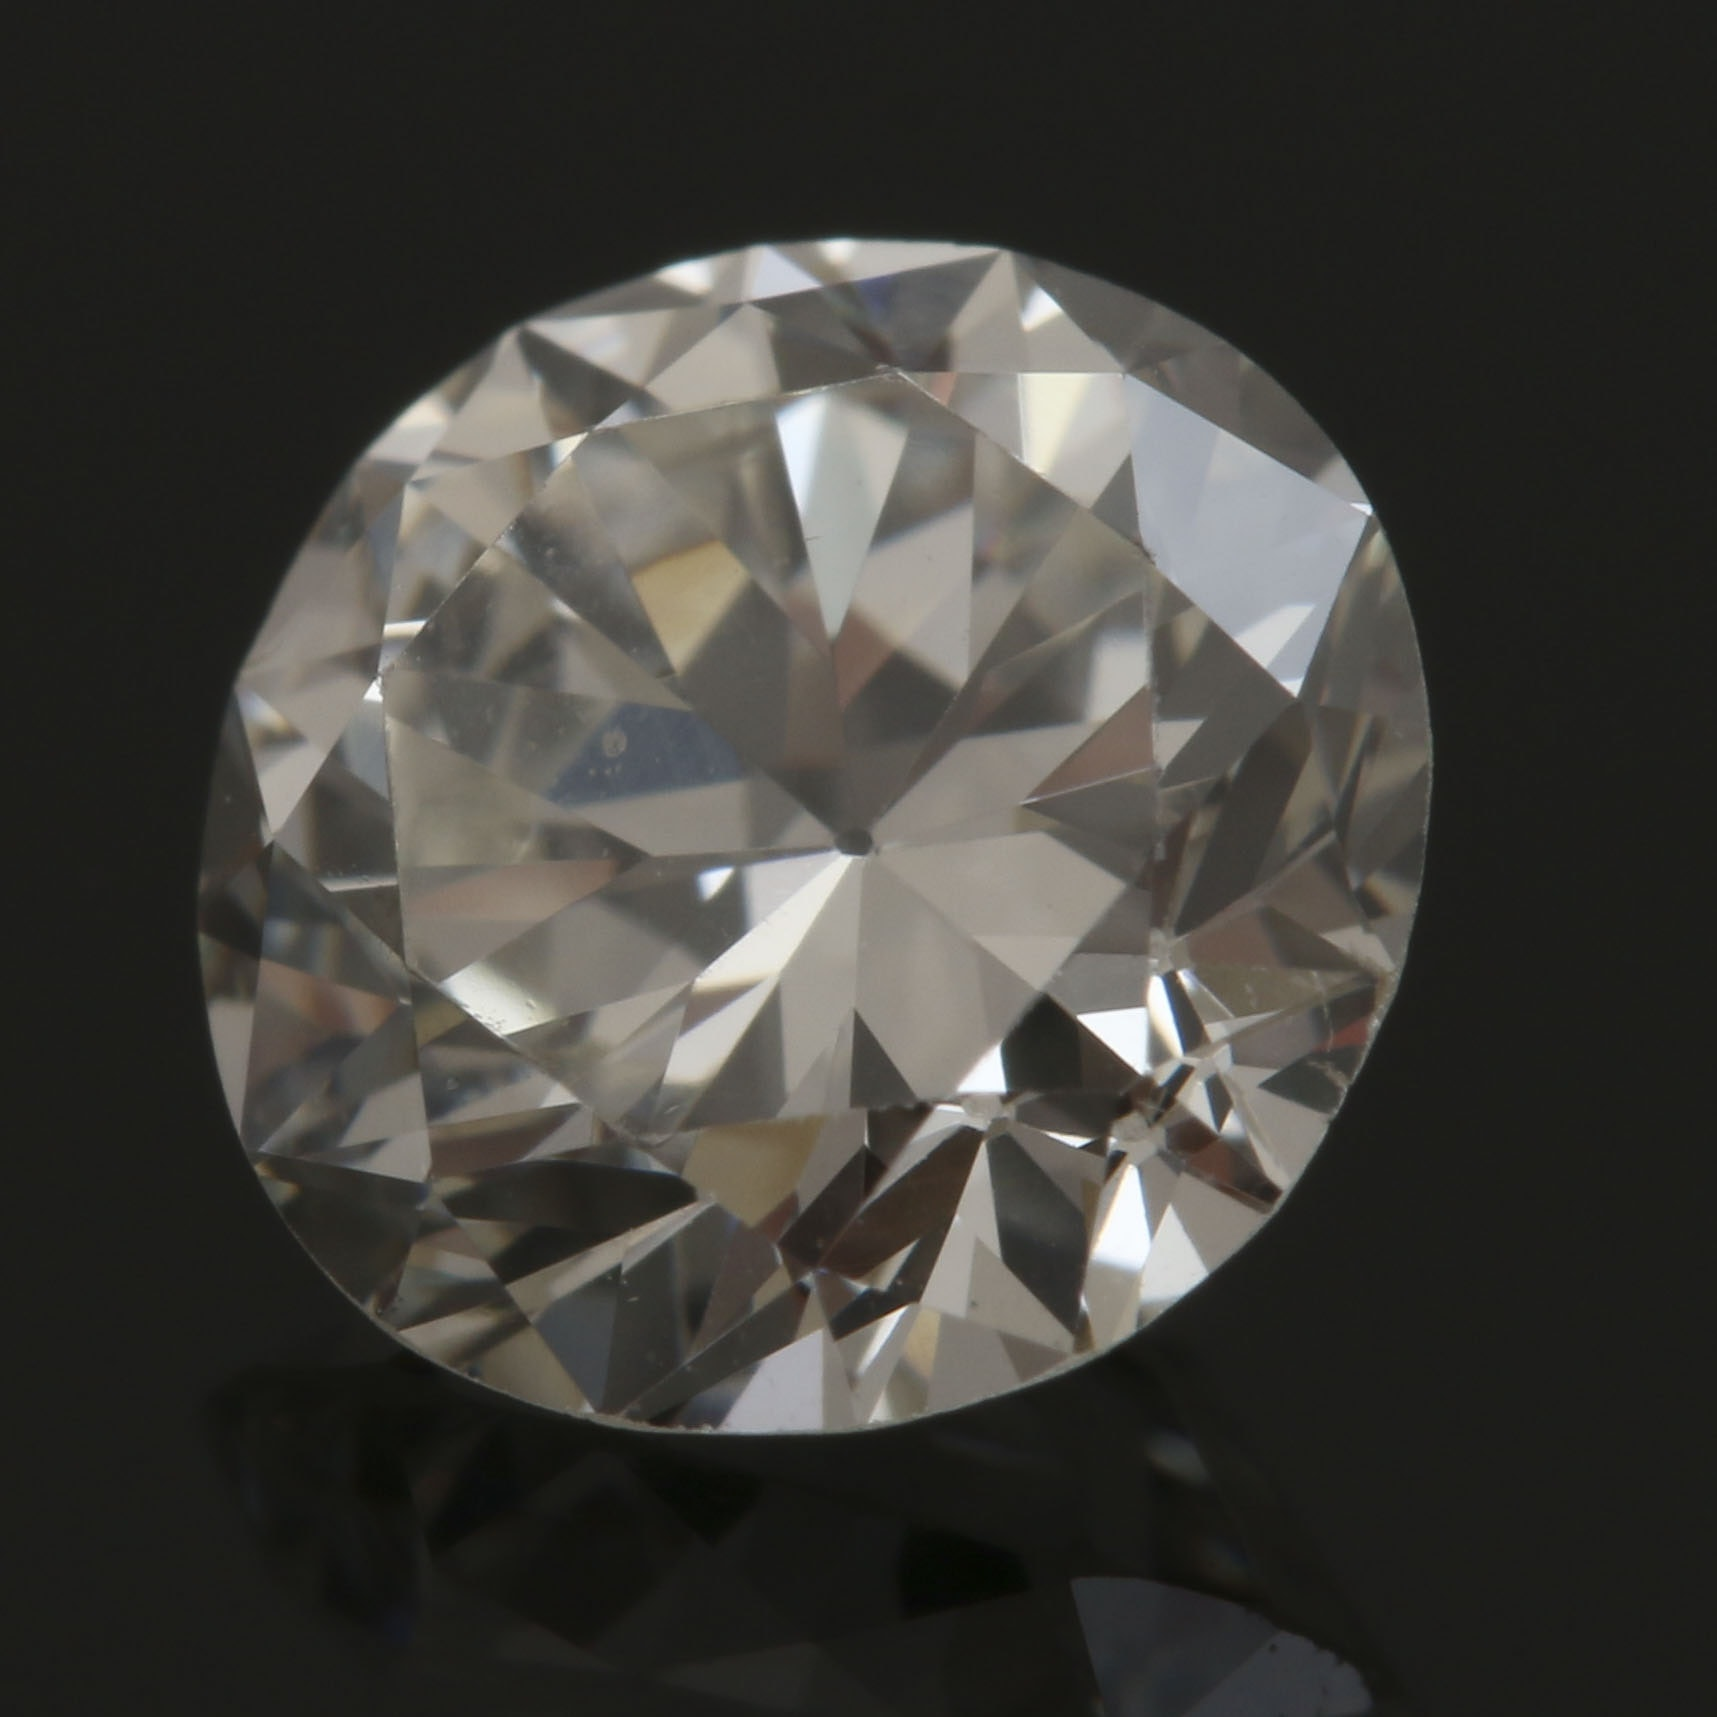 Loose 0.52 CT Diamond